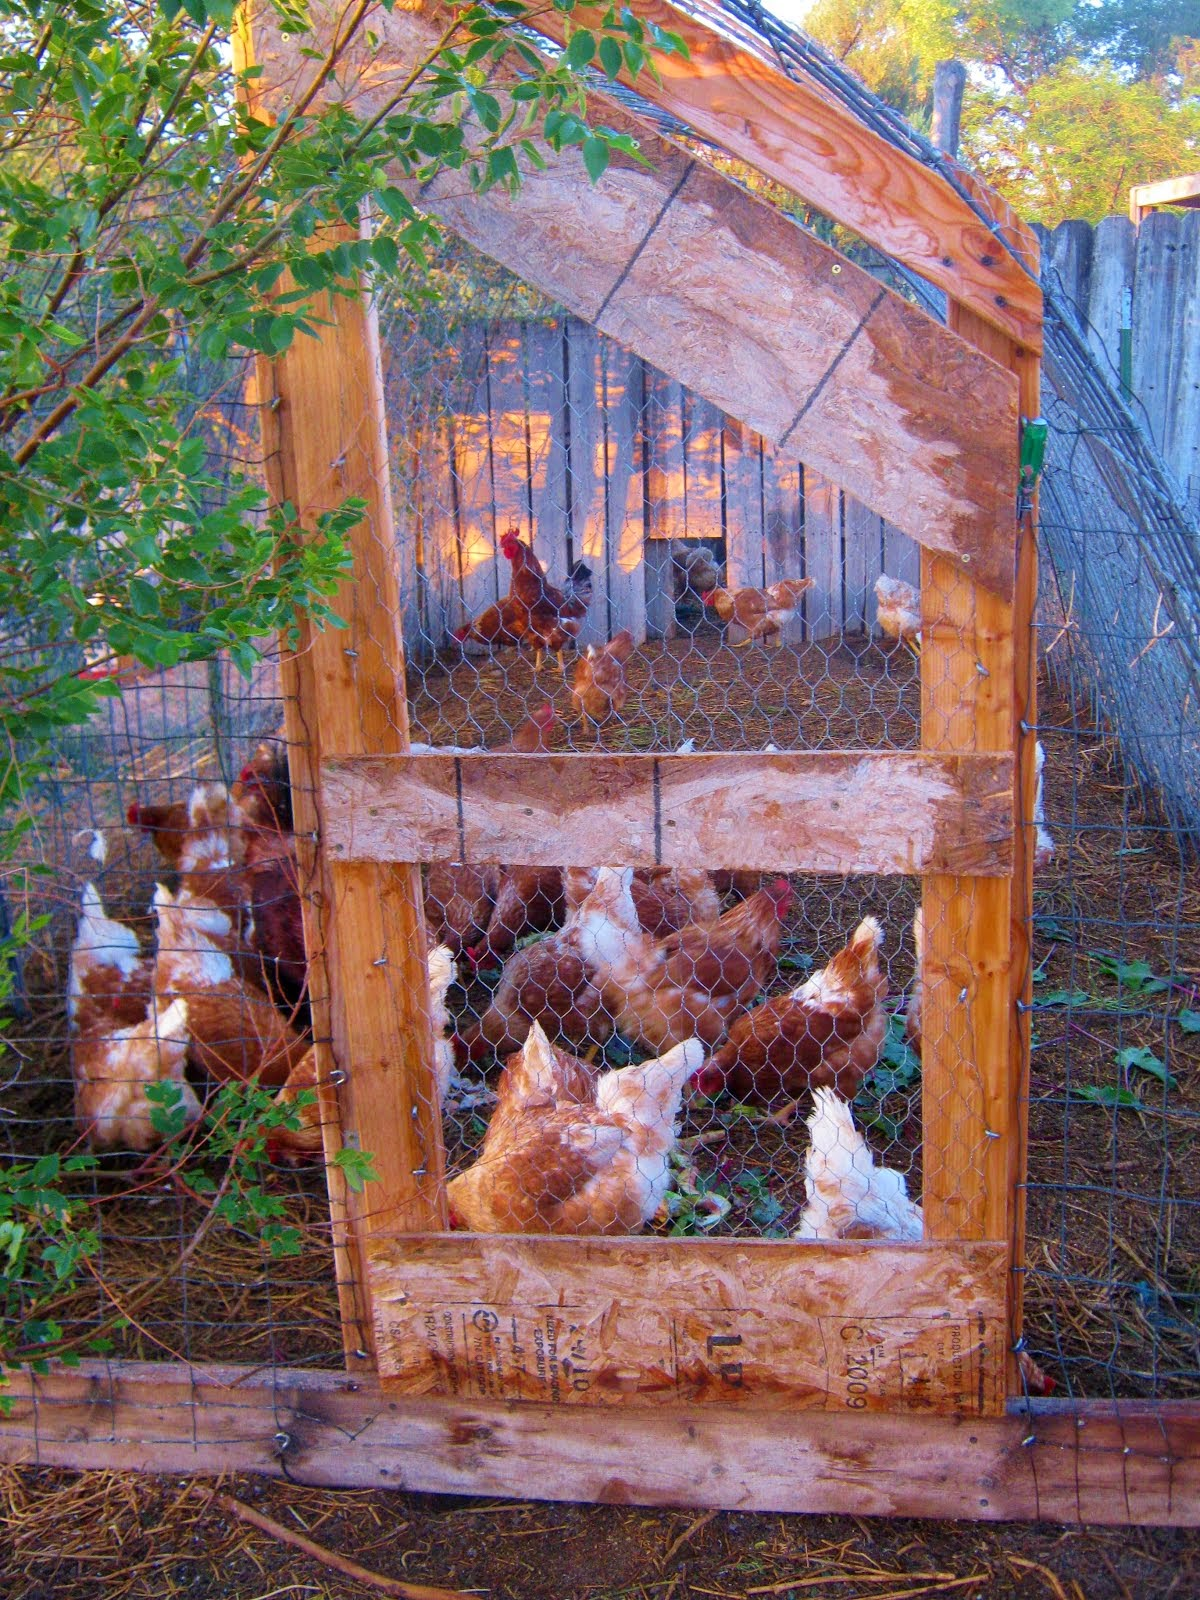 CATTLE PANEL CHICKEN RUN